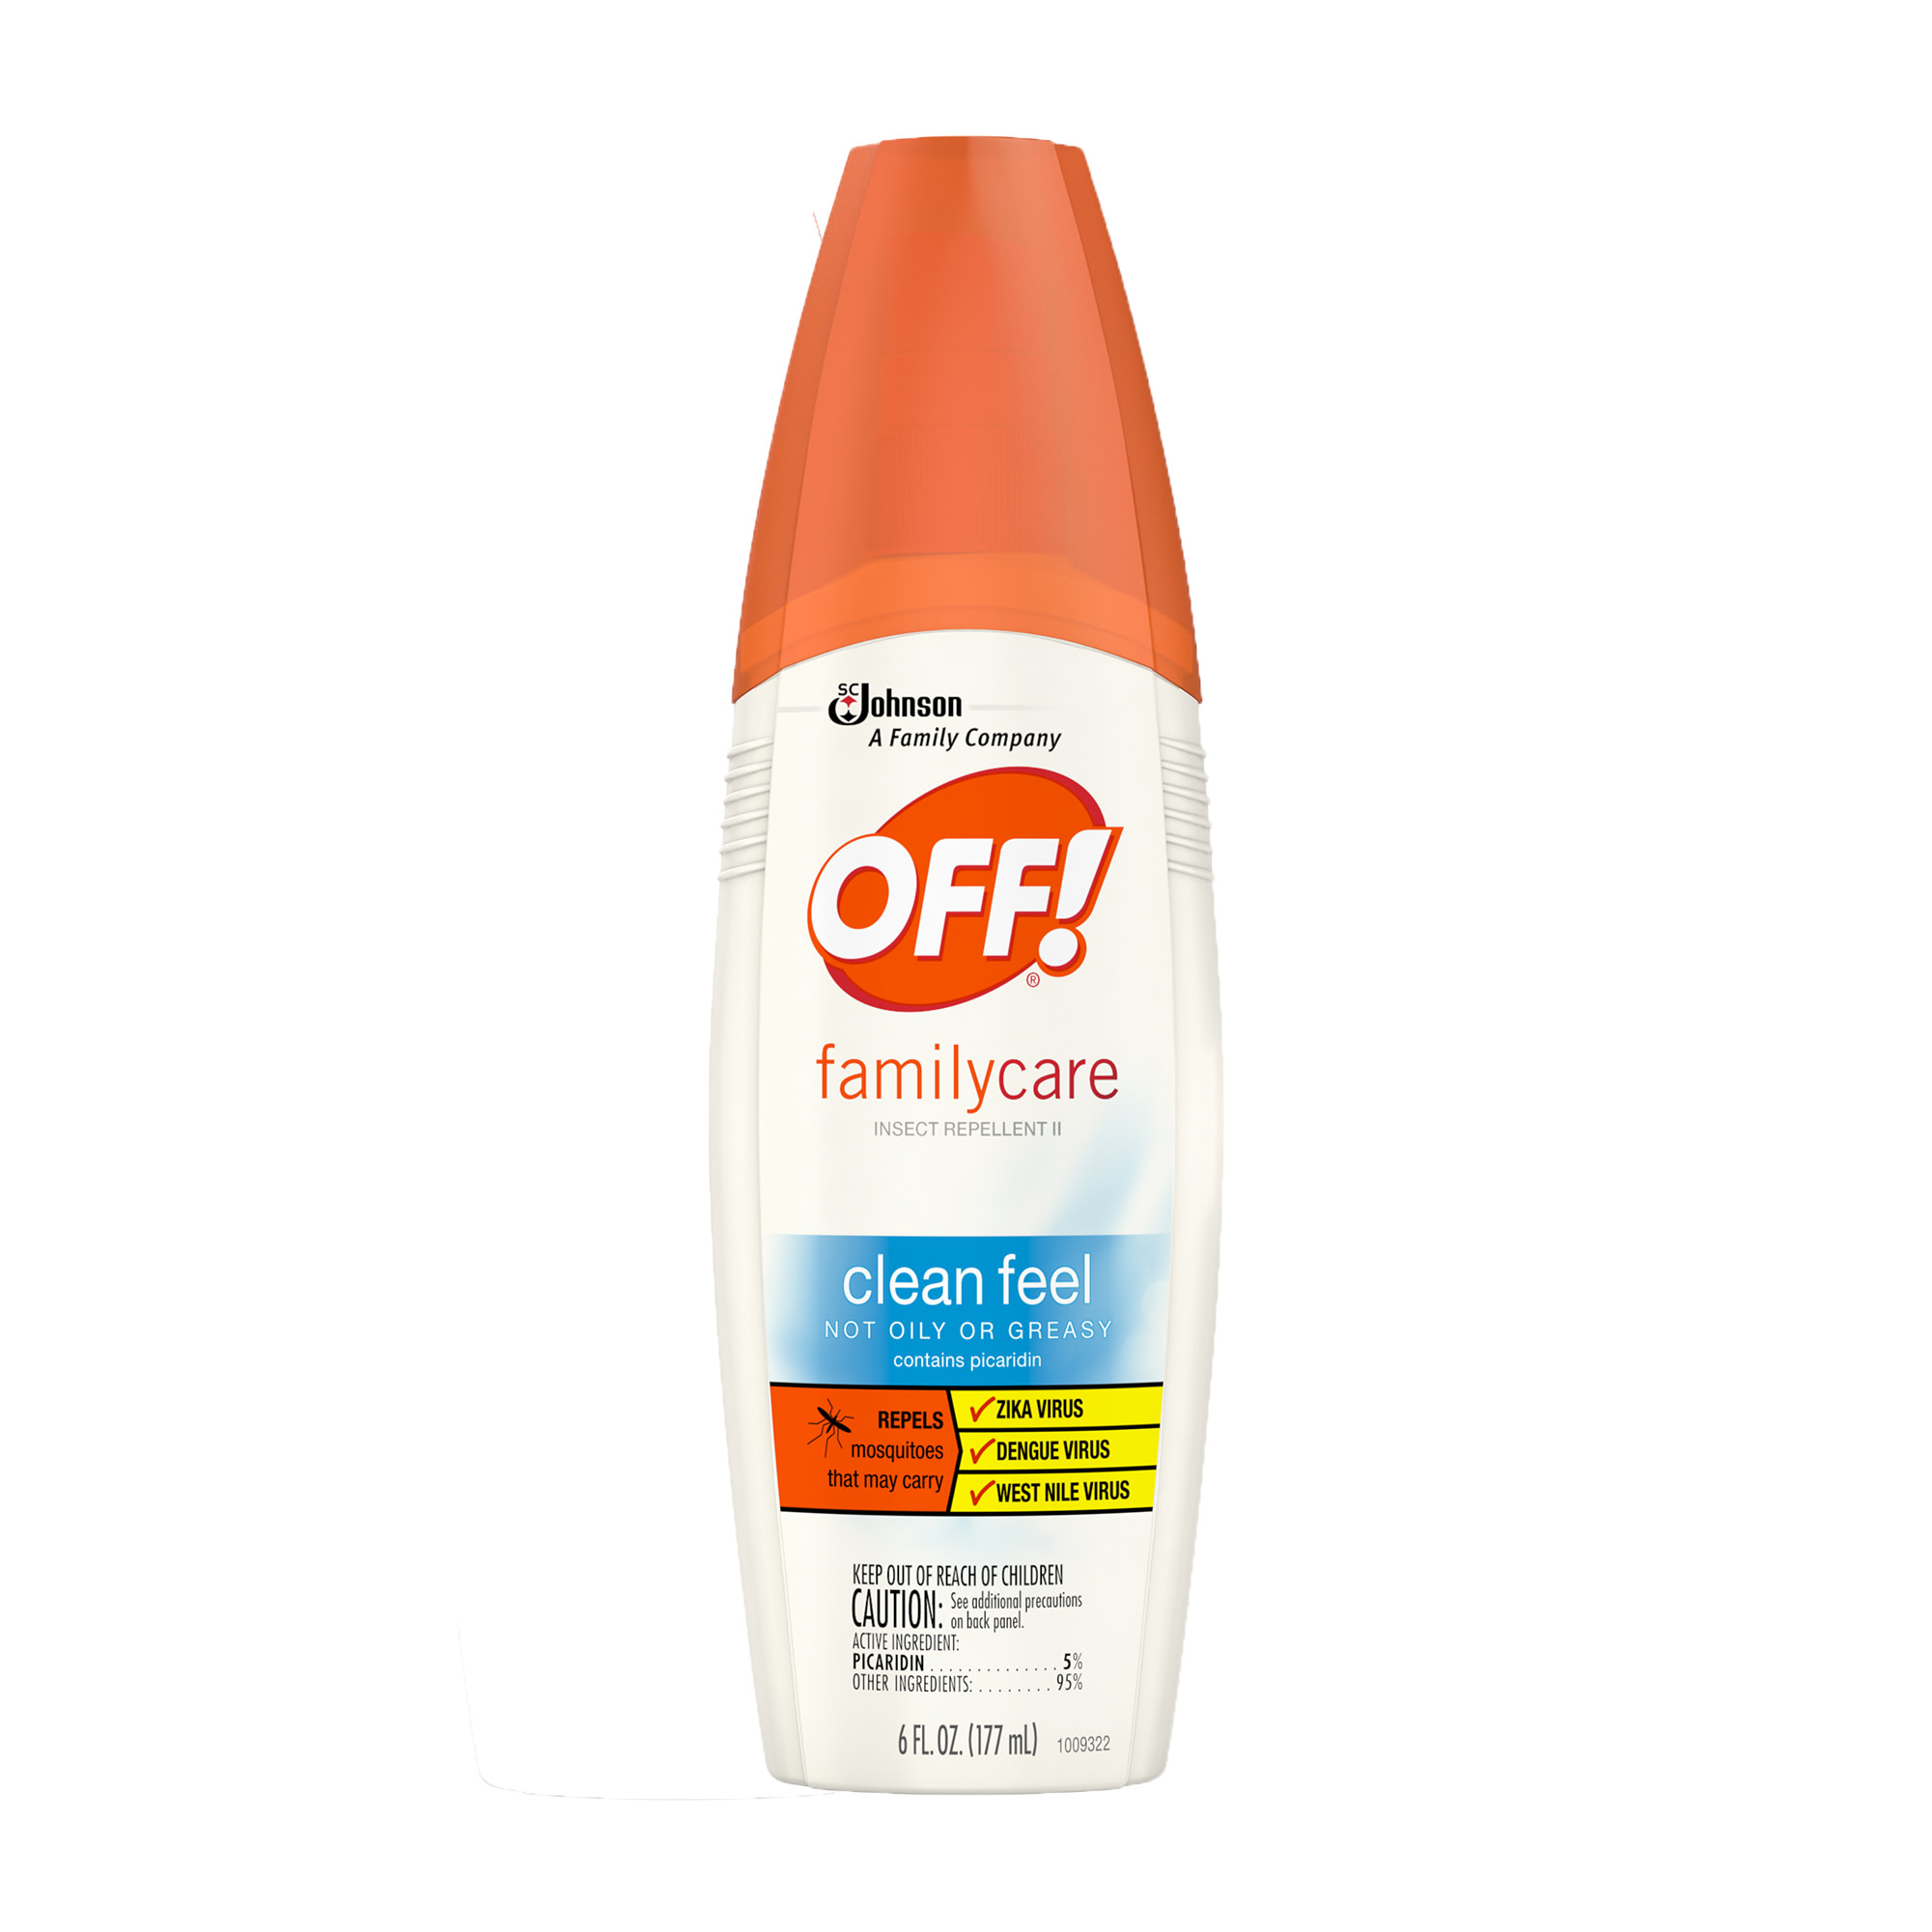 OFF! FamilyCare Insect Repellent II, Clean Feel, 6 Ounces, 1 count